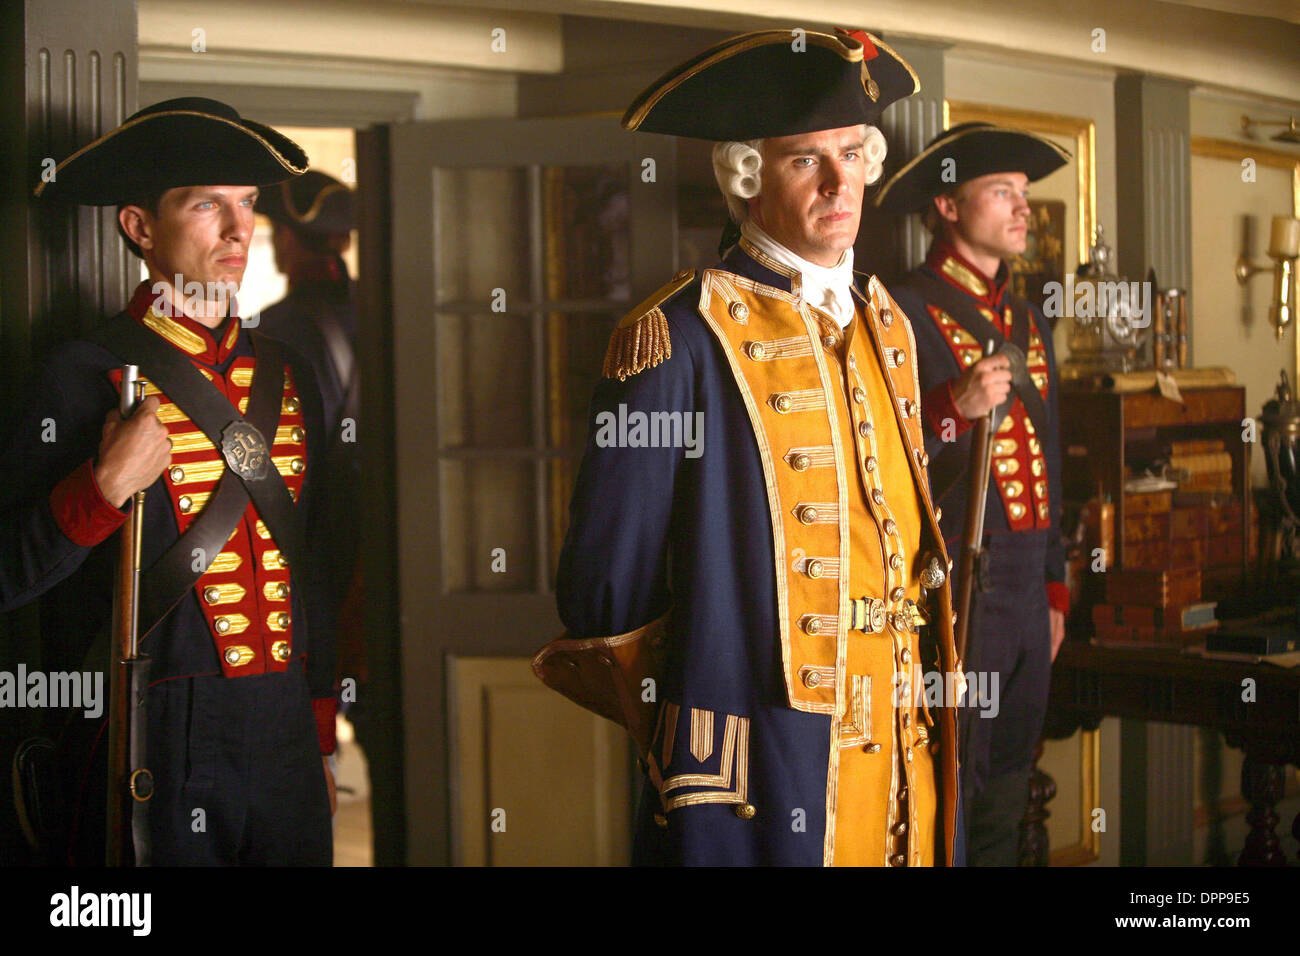 Aug. 14, 2006 - JACK DAVENPORT (CENTER).PIRATES 3.PIRATES OF THE CARIBBEAN: AT WORLD'S END.SUPPLIED BY ES-   TV-FILM STILL.K53369(Credit Image: © Globe Photos/ZUMAPRESS.com) - Stock Image